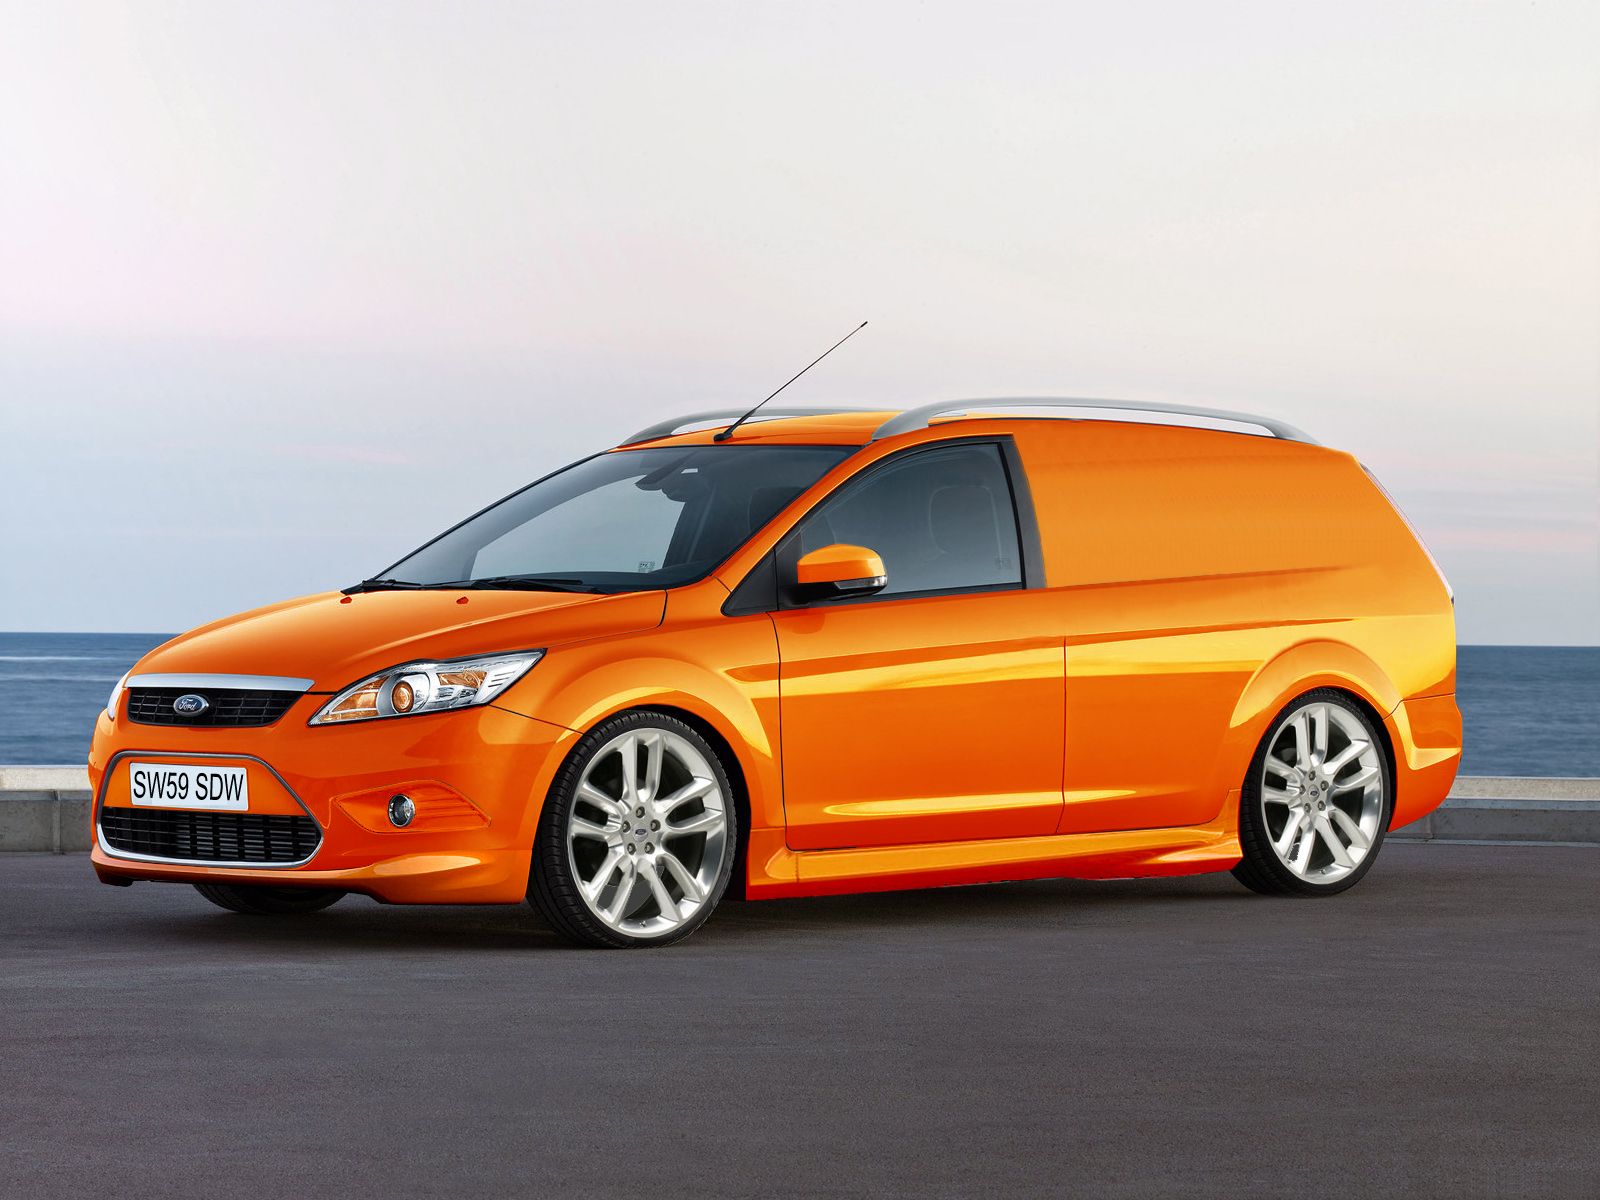 Ford_focus_van_by_SDW_MODS.jpg